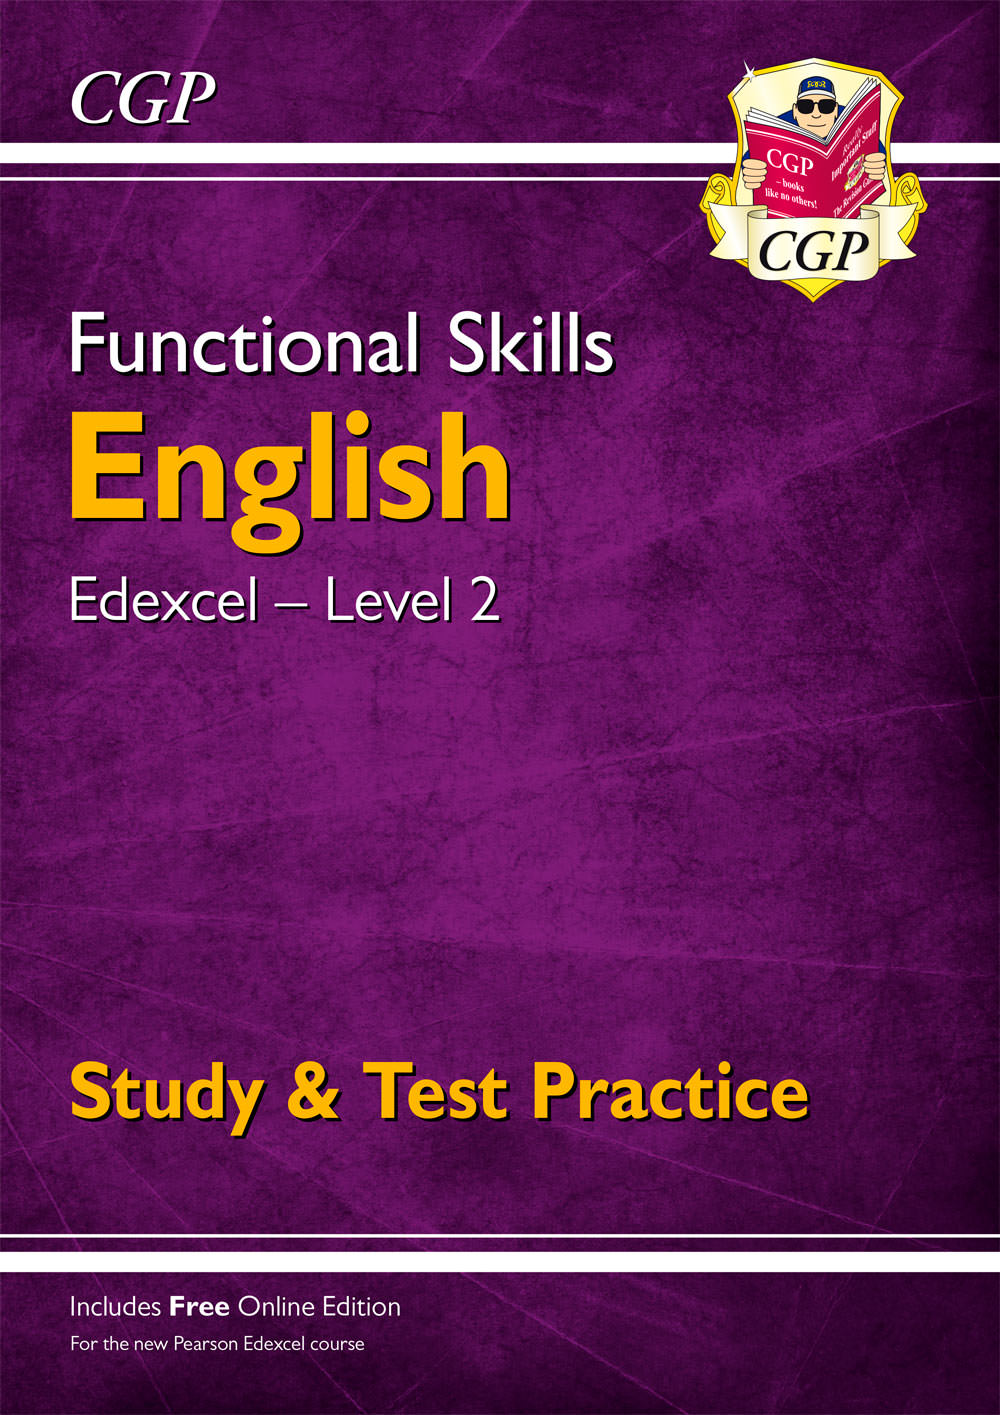 E2ESRA1 - Functional Skills English: Edexcel Level 2 - Study & Test Practice (for 2021 & beyond)